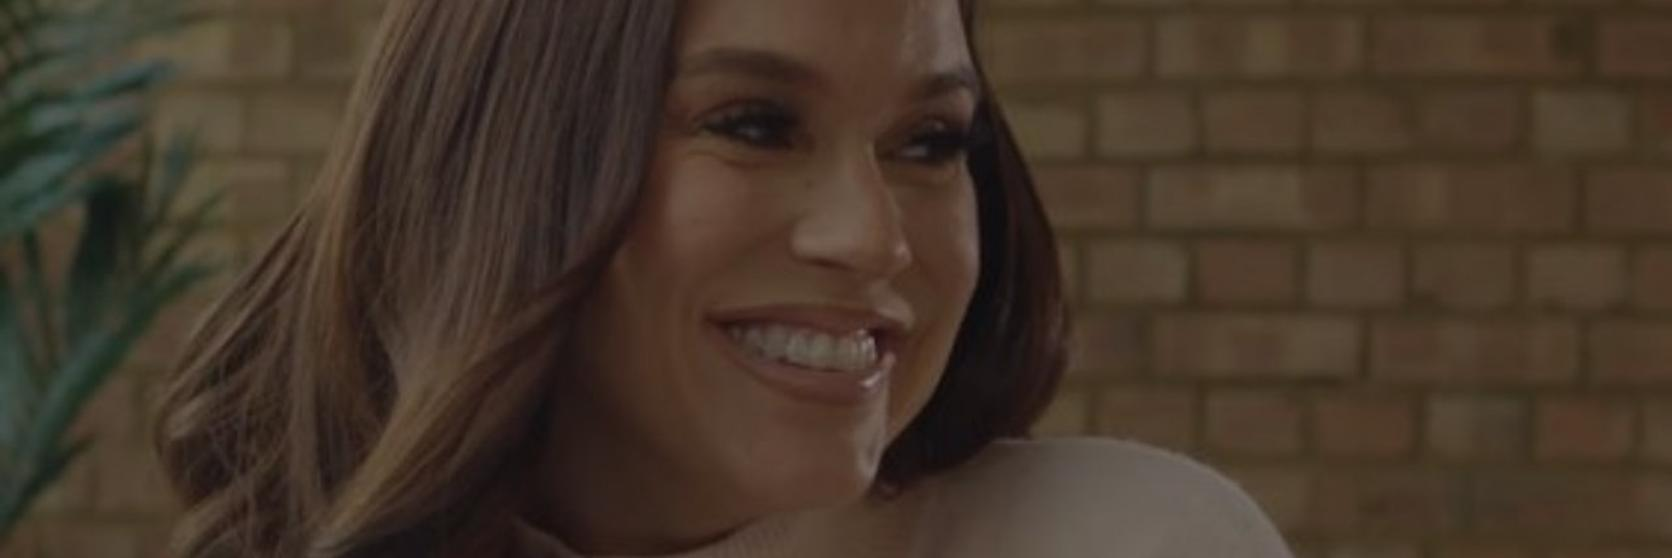 loneliness_Vicky_Pattison_for_Interflora